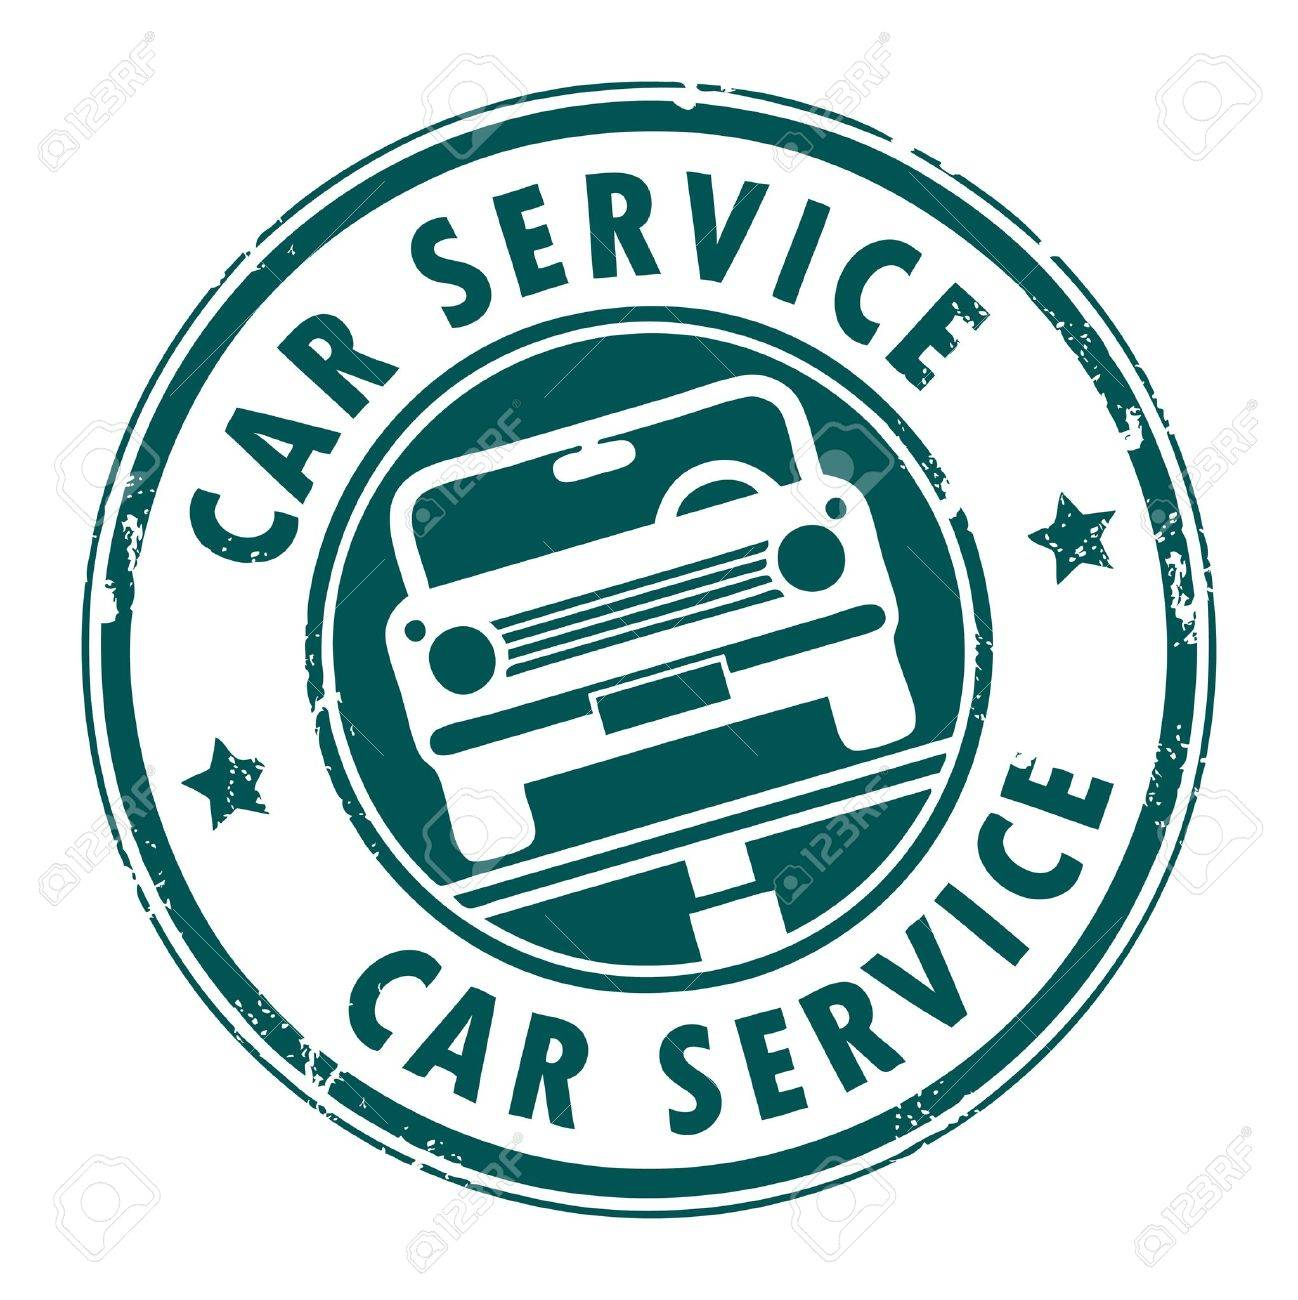 car service grunge stamp stock vector 14068565